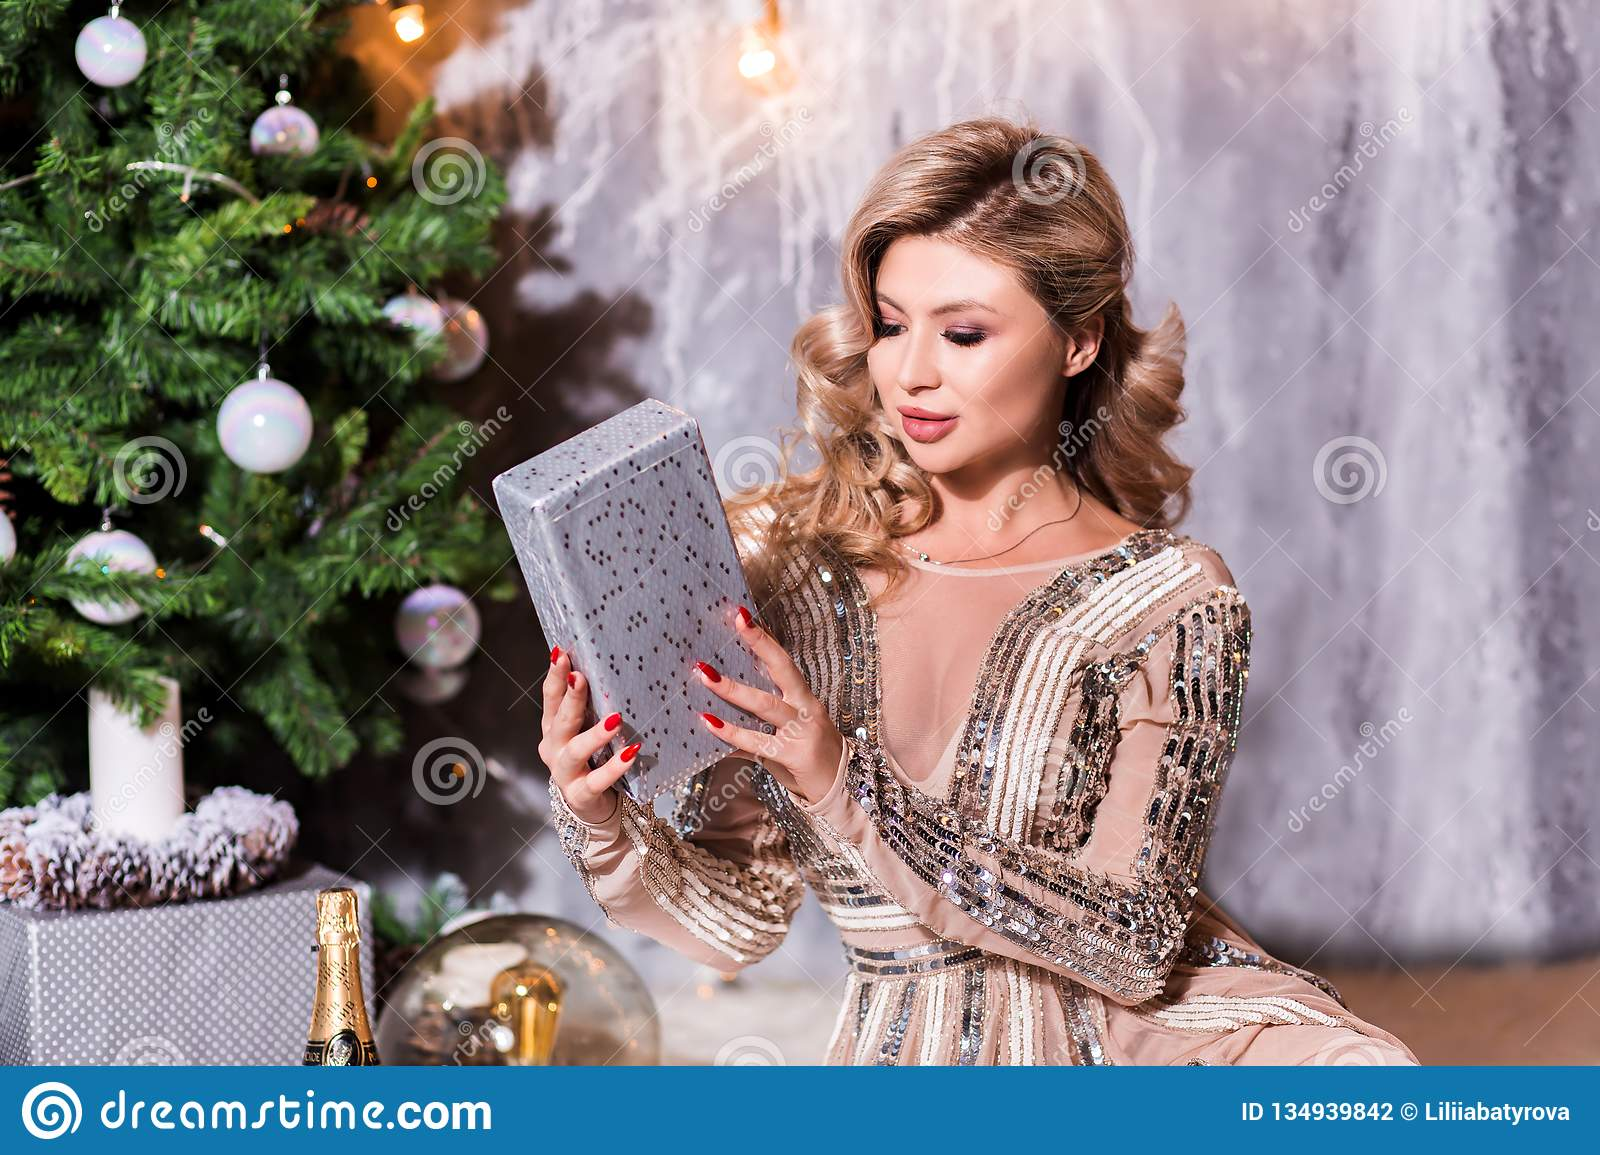 What a great surprise Beautiful young woman opening a gift box and smiling. fashion studio photo of beautiful charming woman with